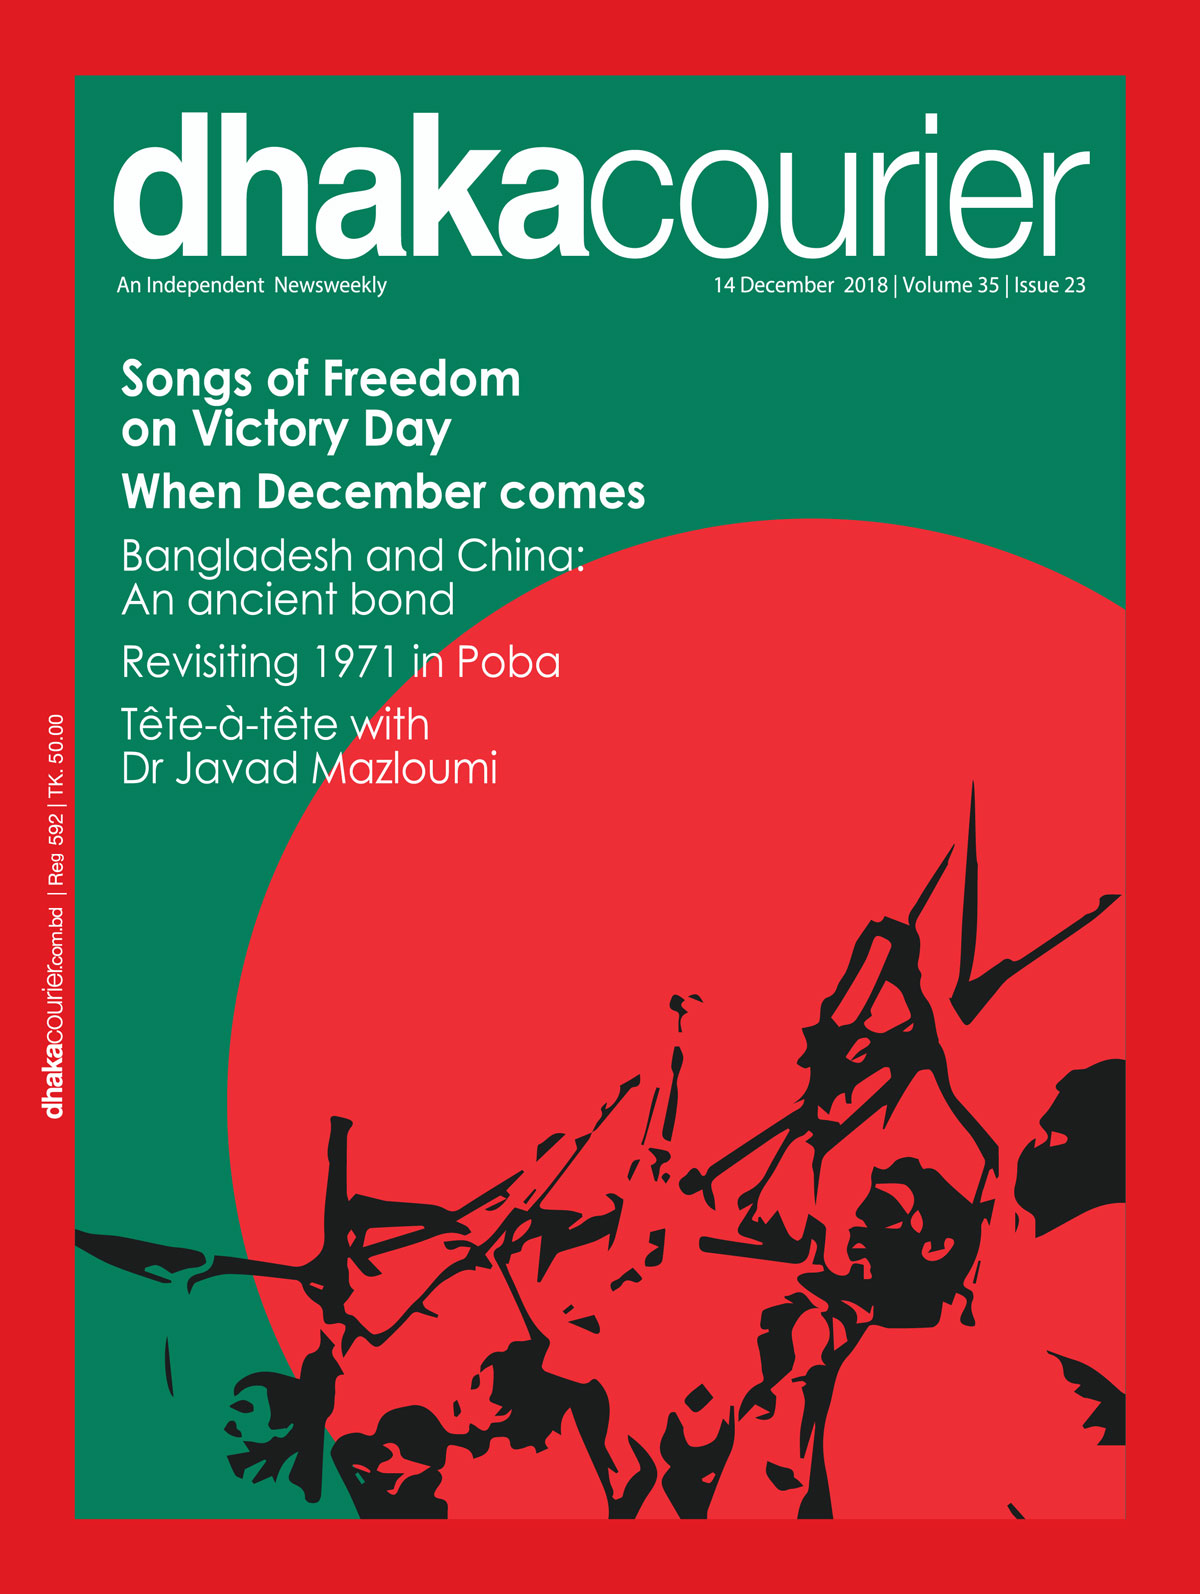 DhakaCourier Vol 35 Issue 23